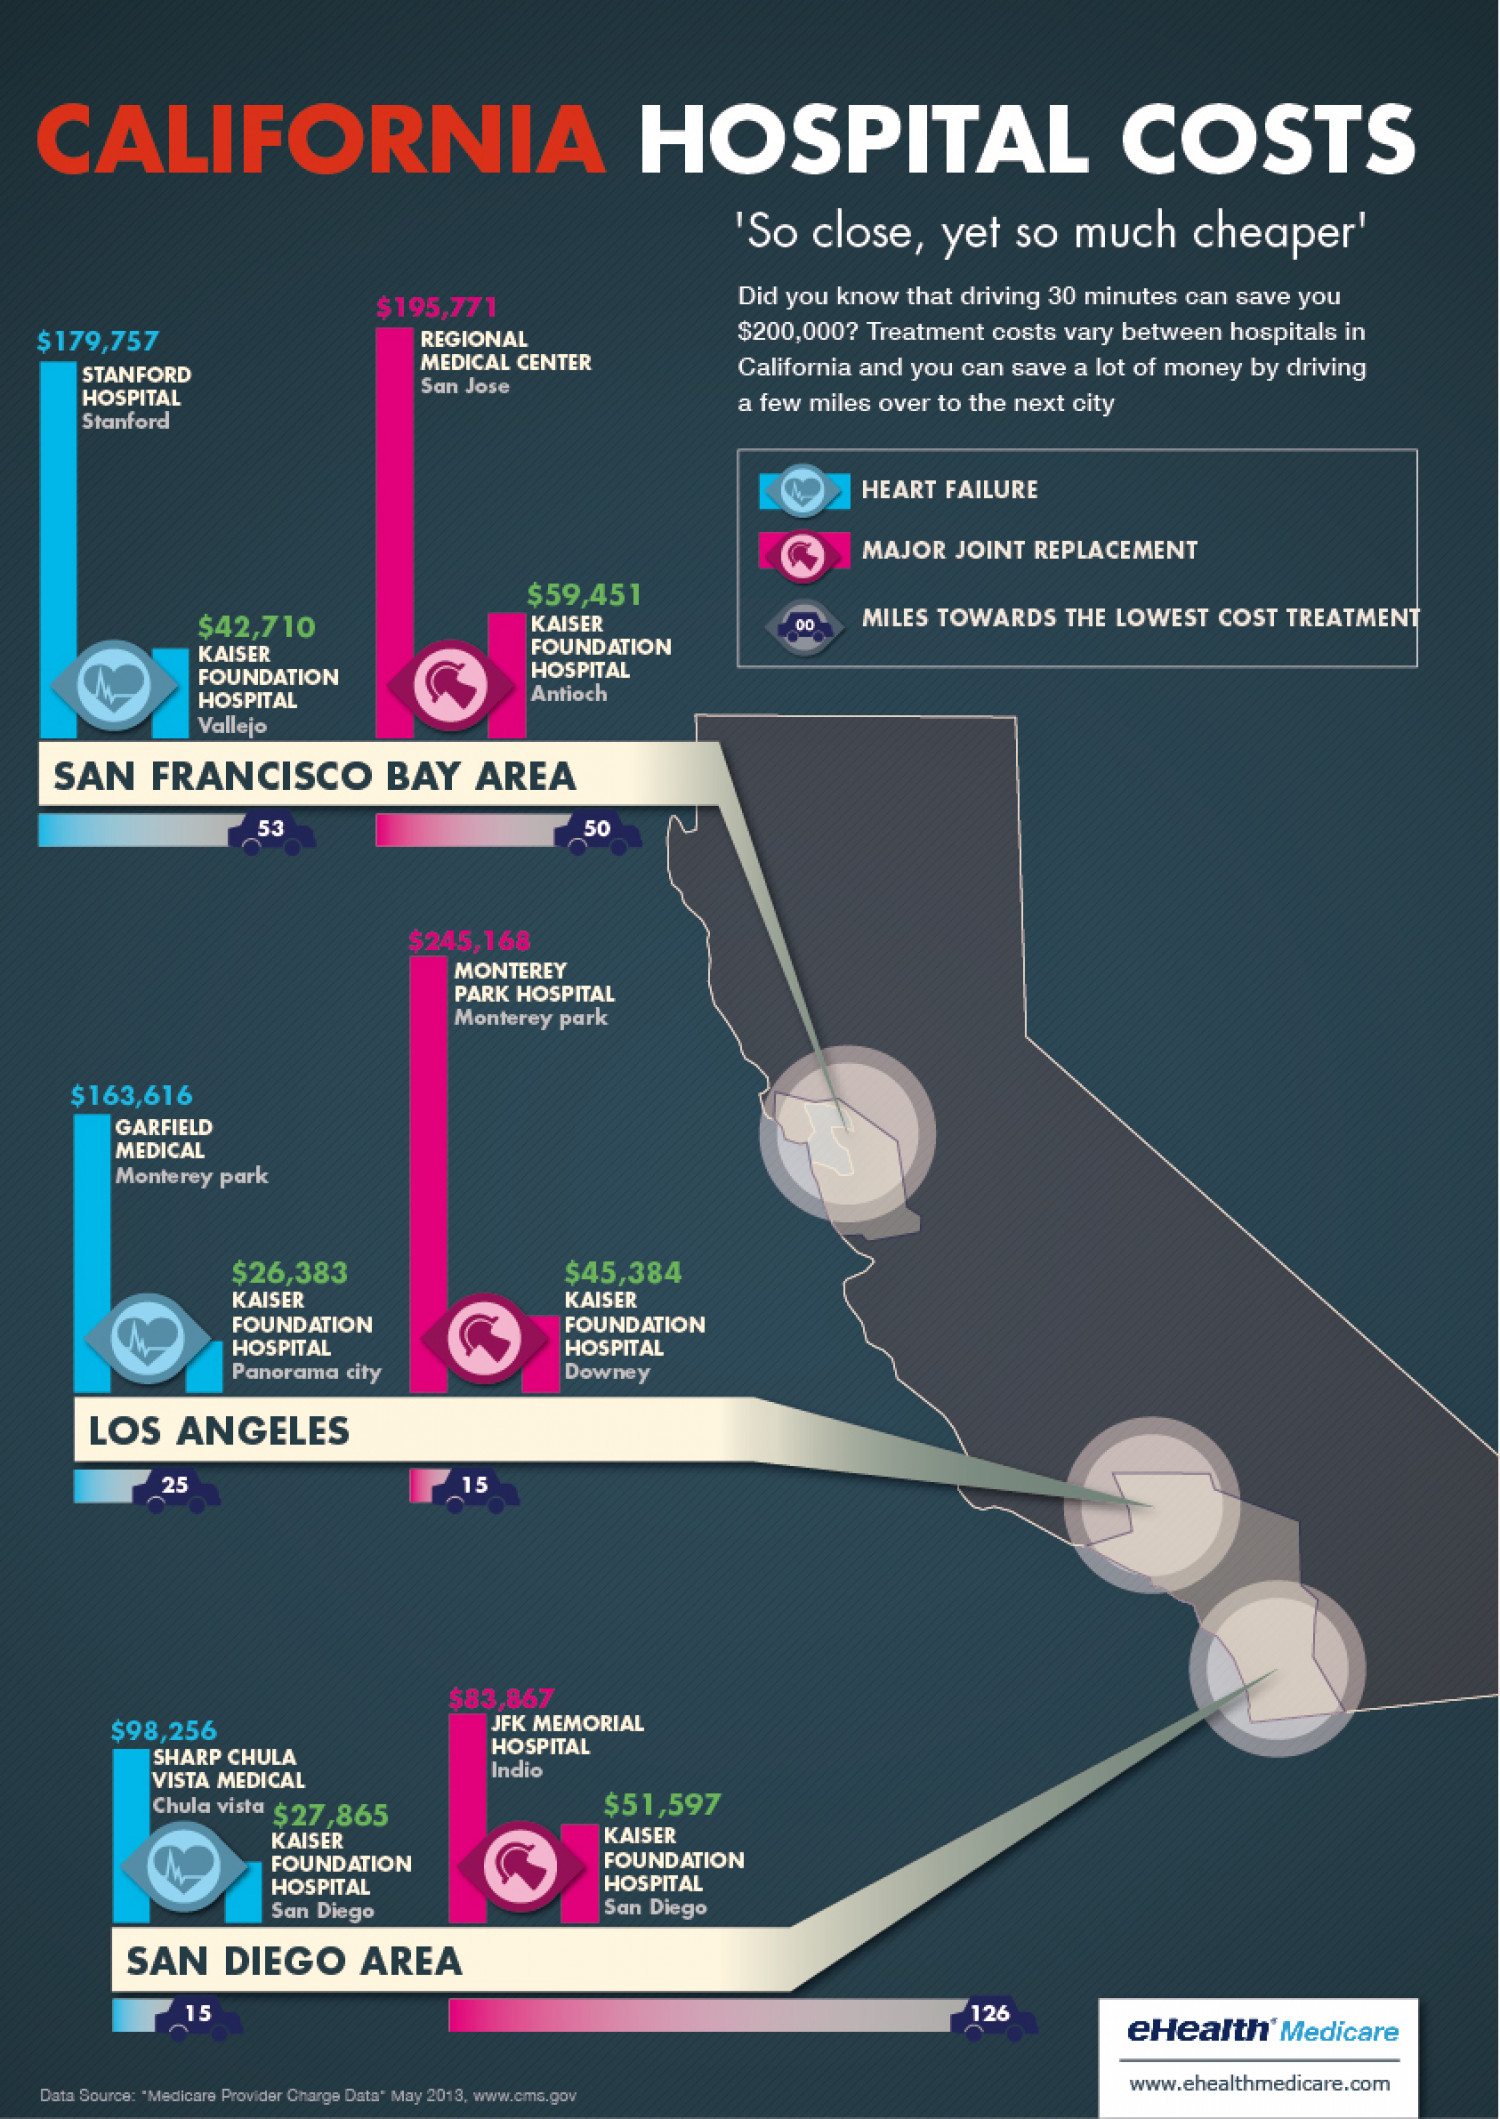 California Hospital Costs Infographic